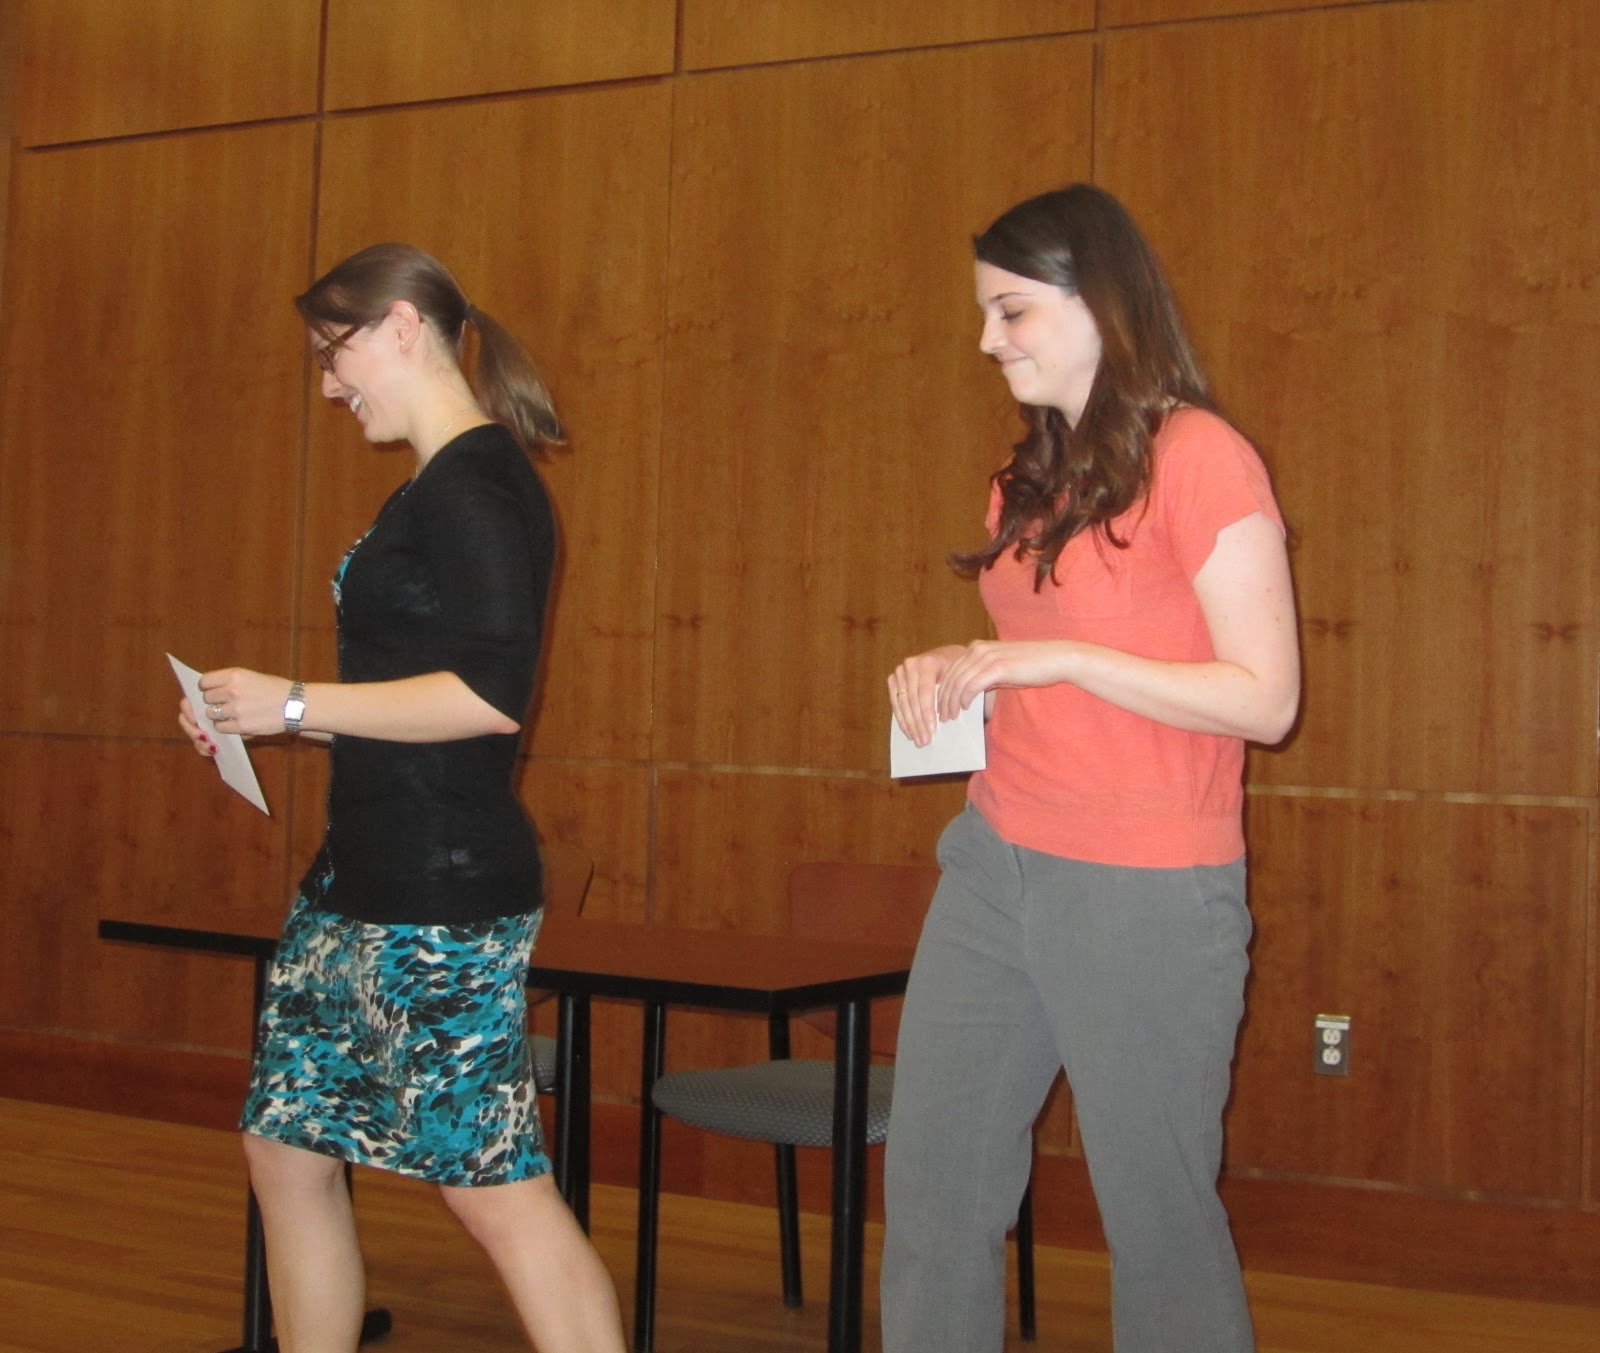 villanova english pictures from the awards ceremony rebecca hepp and cara saraco co winners of the the margaret powell esmonde memorial award for the most distinguished graduate essay written in a villanova